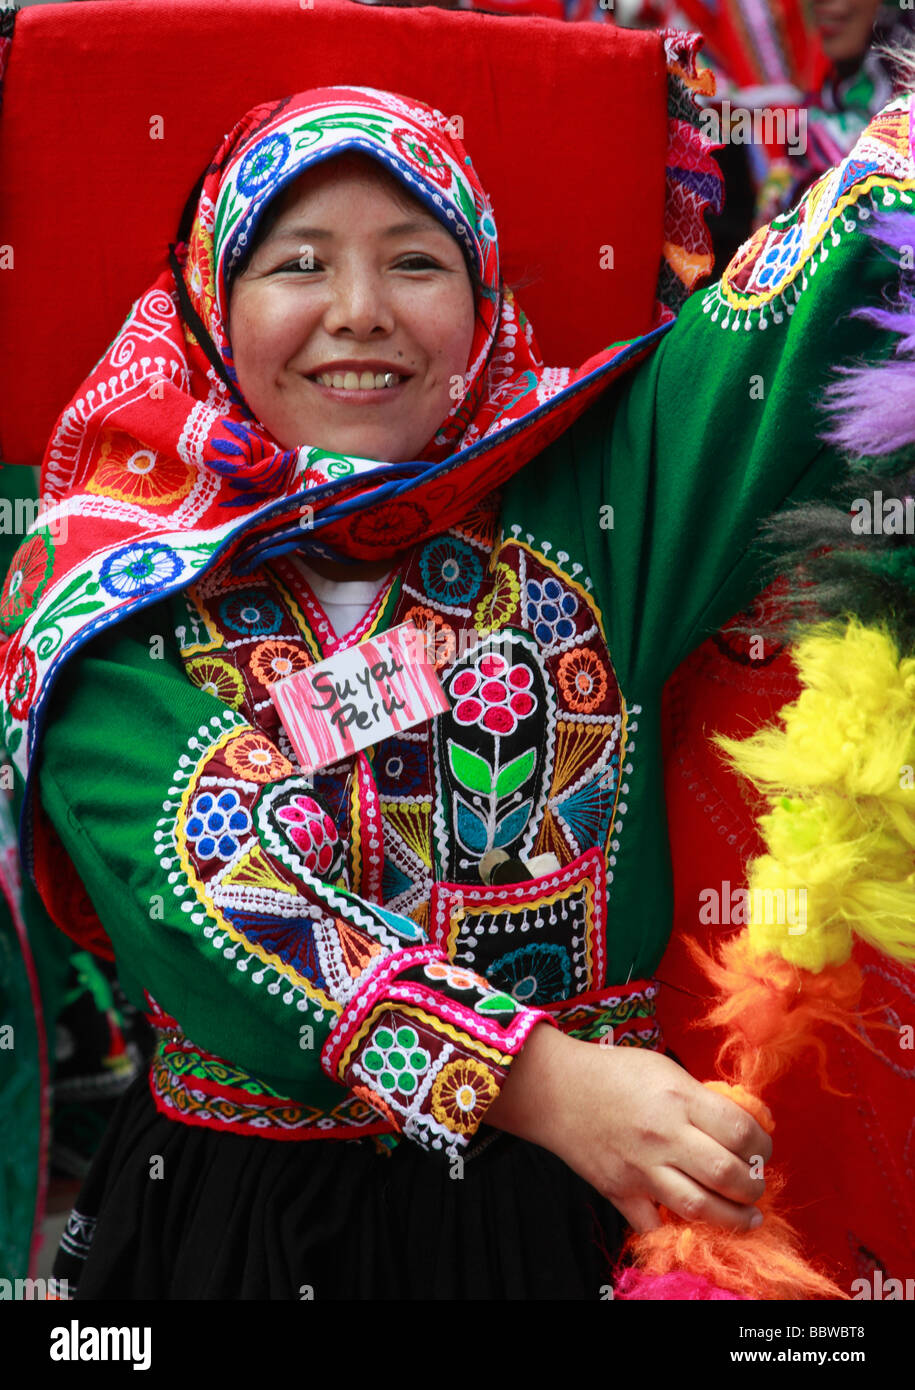 Allemagne Berlin Carnaval des Cultures femme péruvienne en costume traditionnel Photo Stock